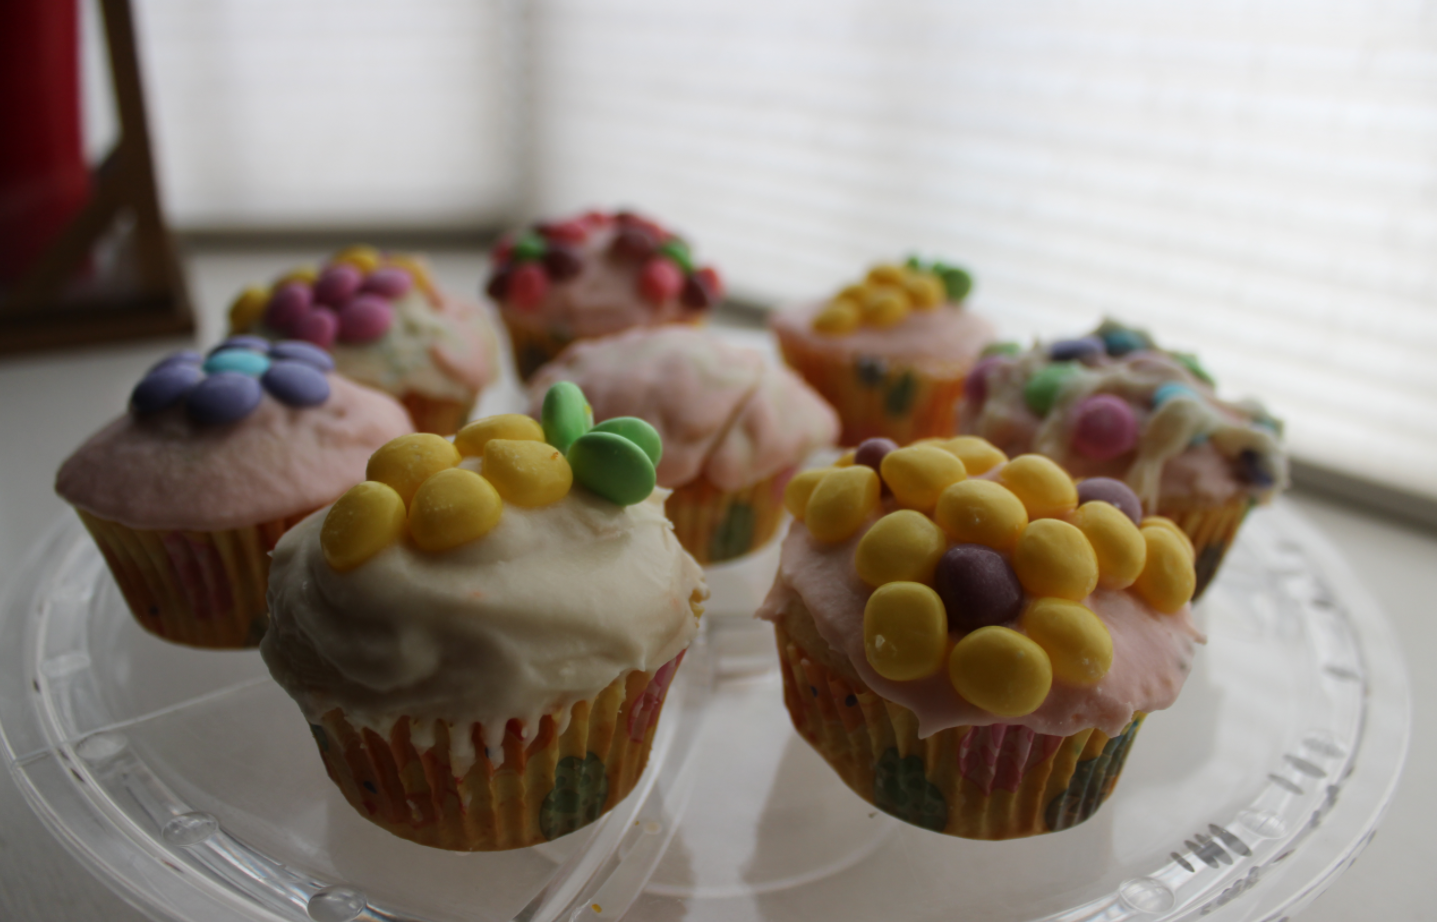 Fantastic Eats with Q and E: Springtime cupcakes